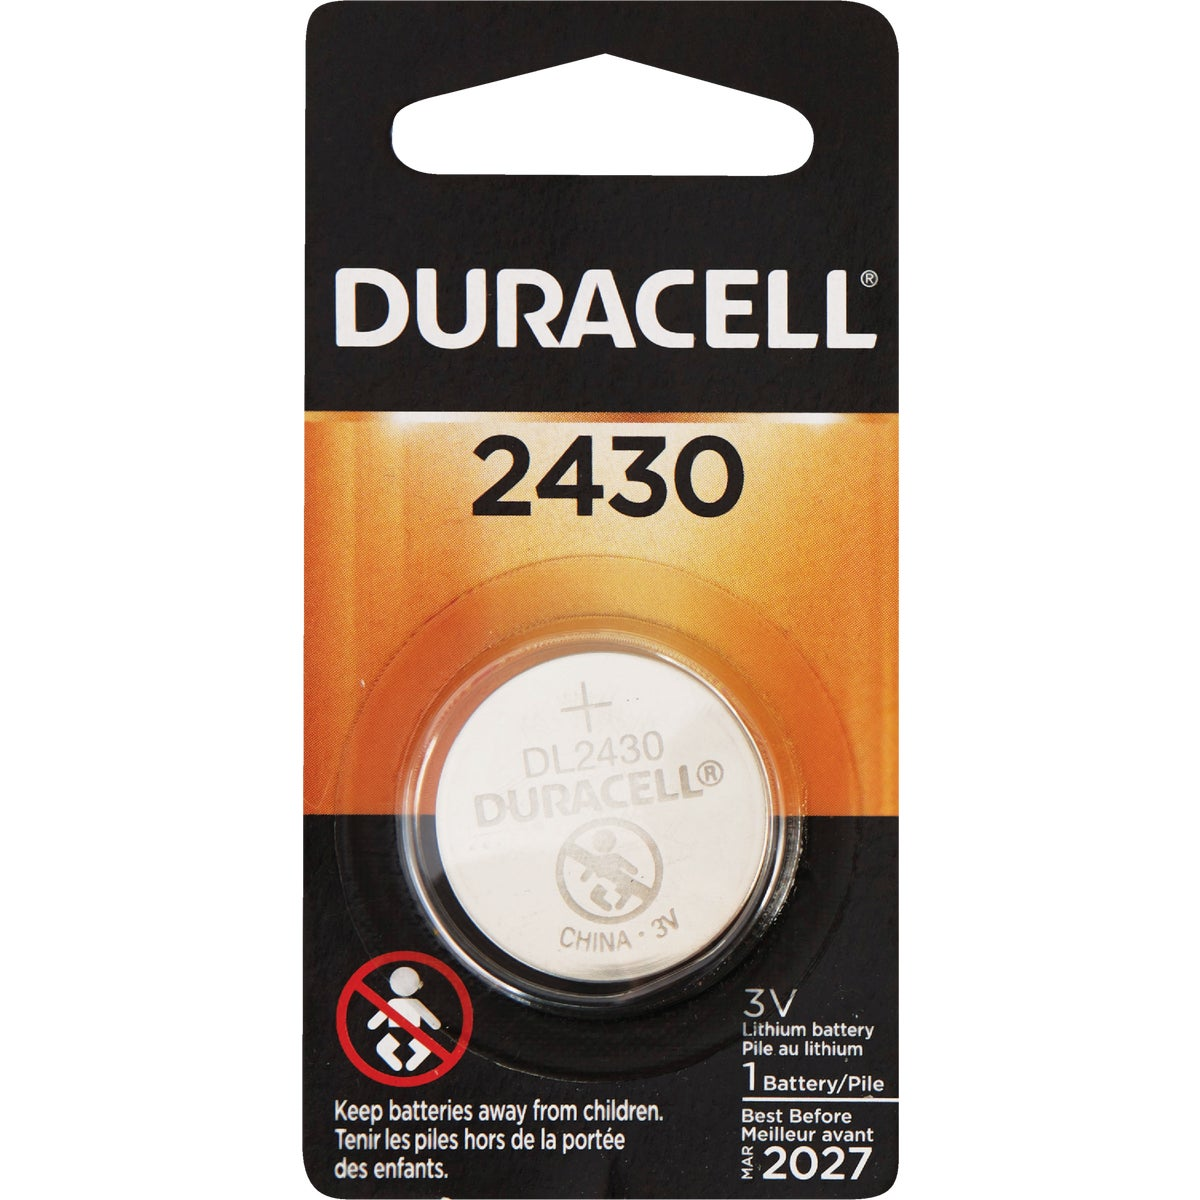 DL2430 3V MED BATTERY - 44087 by P & G  Duracell